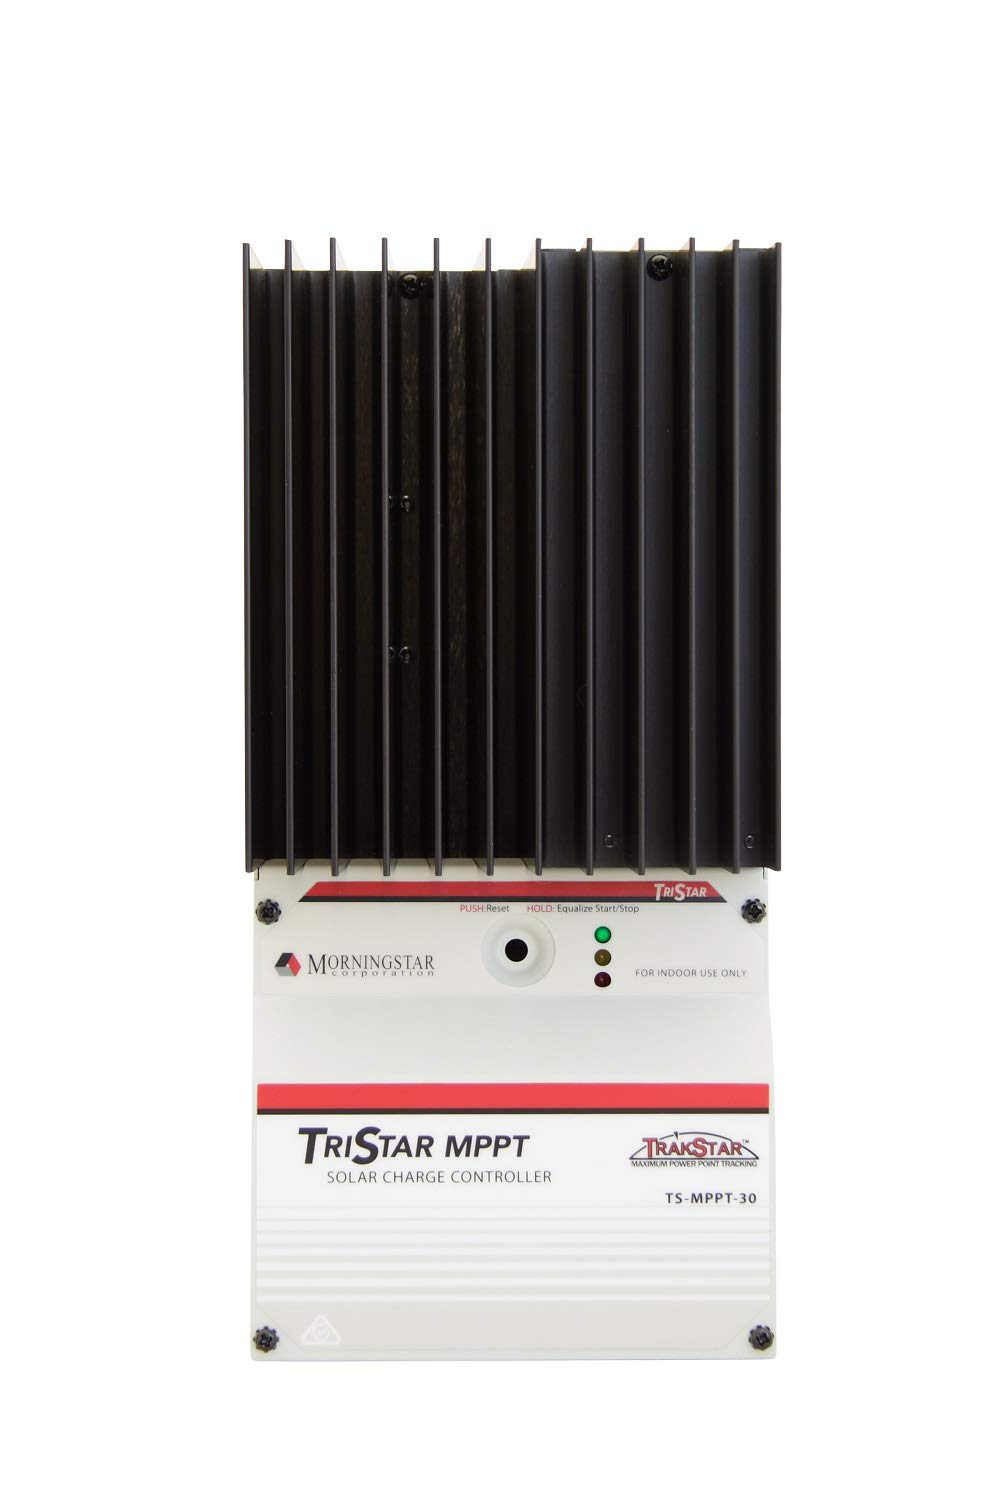 Morningstar TS-MPPT-30 TriStar 30 Amp MPPT Solar Controller with Maximum Power Point Tracking, Better Peak Power Point Tracking than Other MPPT Controllers, Very Fast Sweeping of the Entire I-V Curve